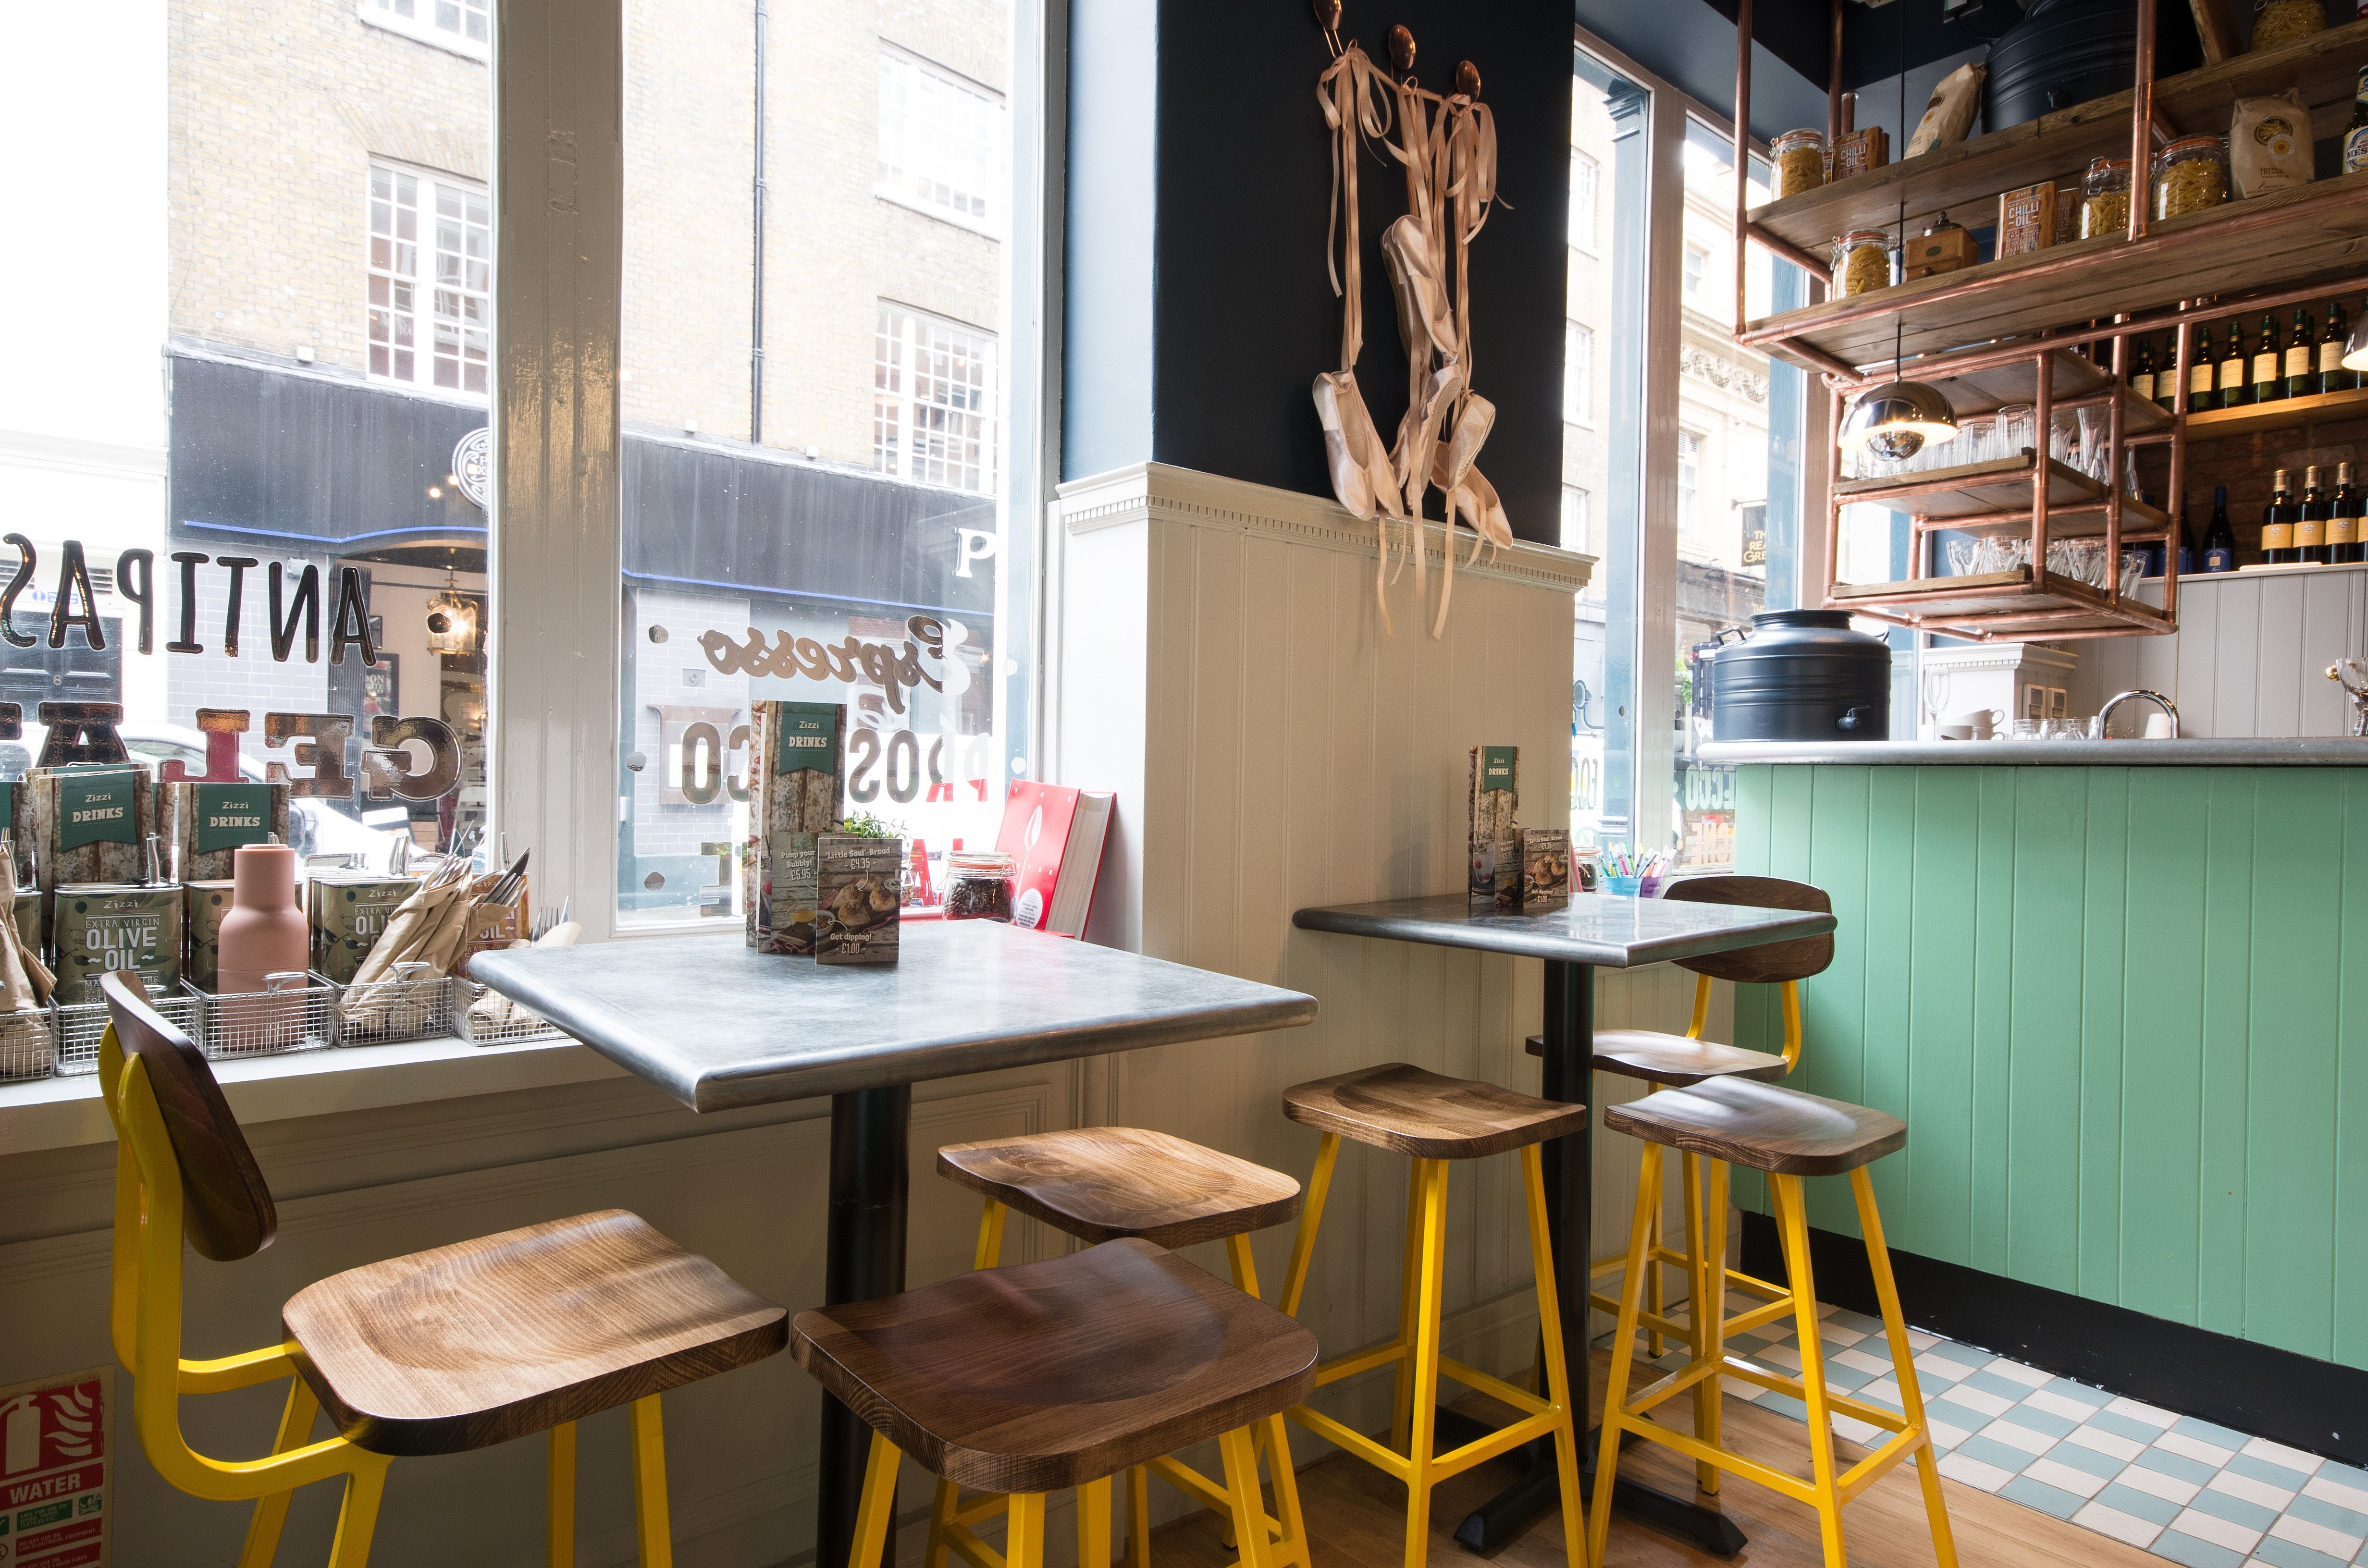 Ravishing Zizzi Bow Street  Covent Garden London  Zizzi Bow Street  With Fascinating Zizzi Bow Street  Covent Garden London With Amusing Cheap Garden Fencing Uk Also Kitchen Garden Kit In Addition Salvage Garden Gates And Mahjong Gardens As Well As Hilton Garden Inn Rochester New York Additionally Garden Furniture Gumtree From Pinterestcom With   Fascinating Zizzi Bow Street  Covent Garden London  Zizzi Bow Street  With Amusing Zizzi Bow Street  Covent Garden London And Ravishing Cheap Garden Fencing Uk Also Kitchen Garden Kit In Addition Salvage Garden Gates From Pinterestcom